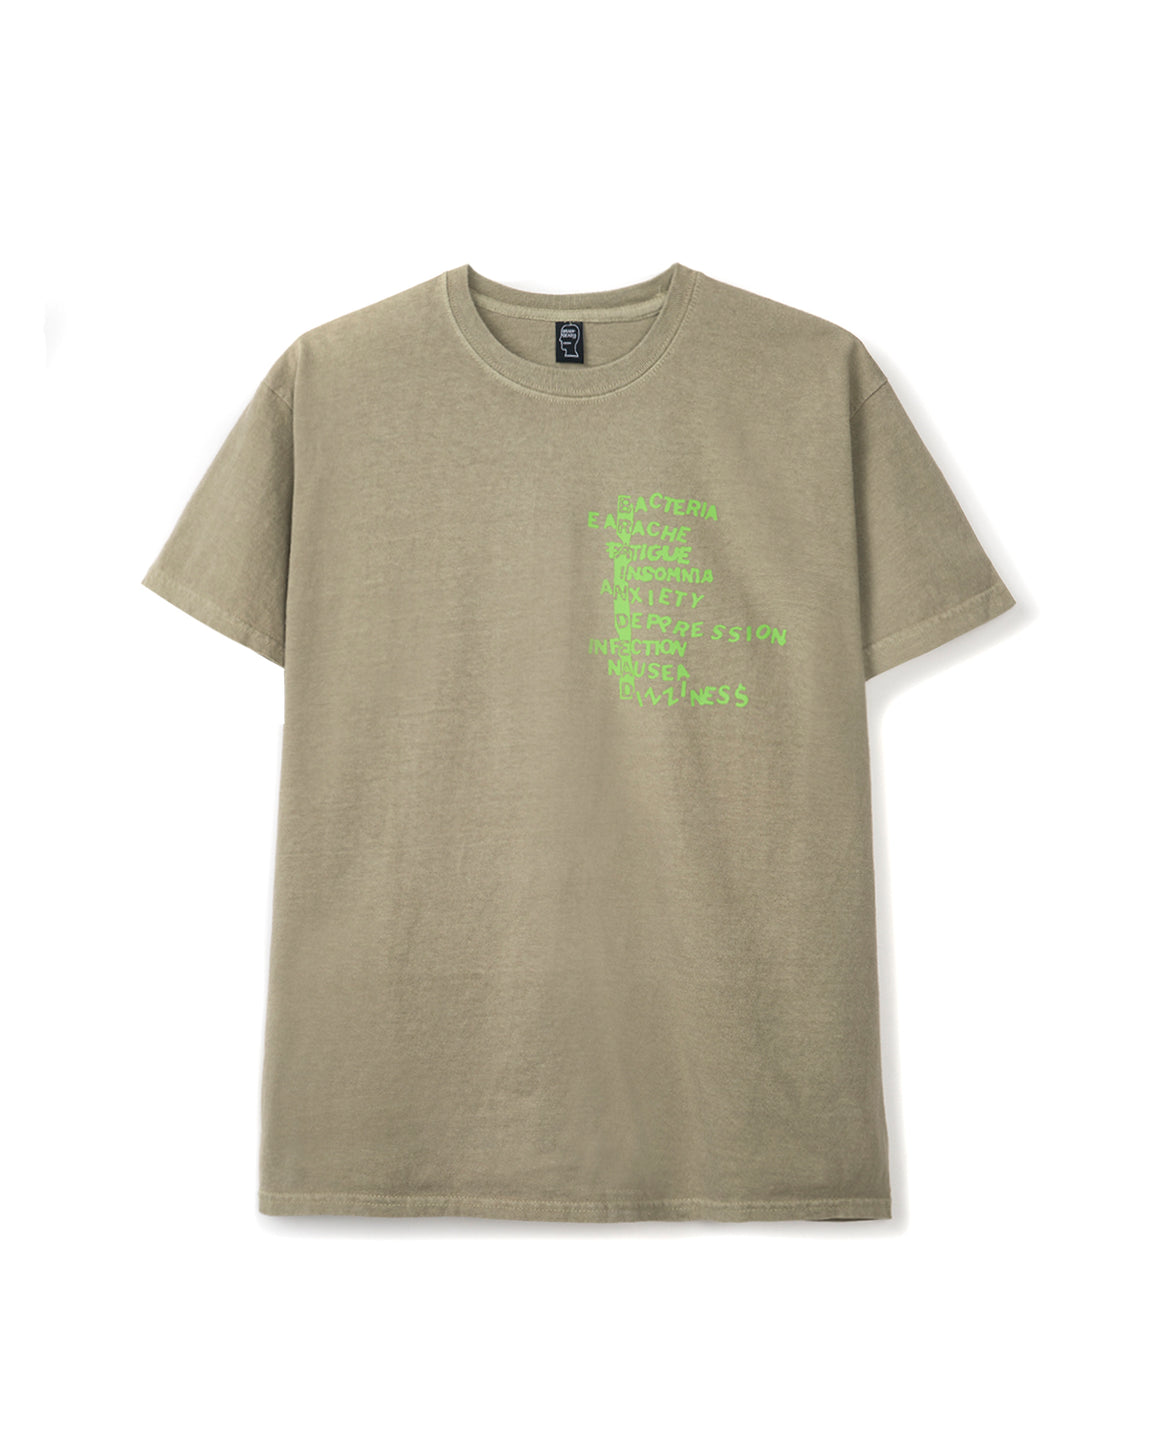 Heatwave T-shirt - Natural